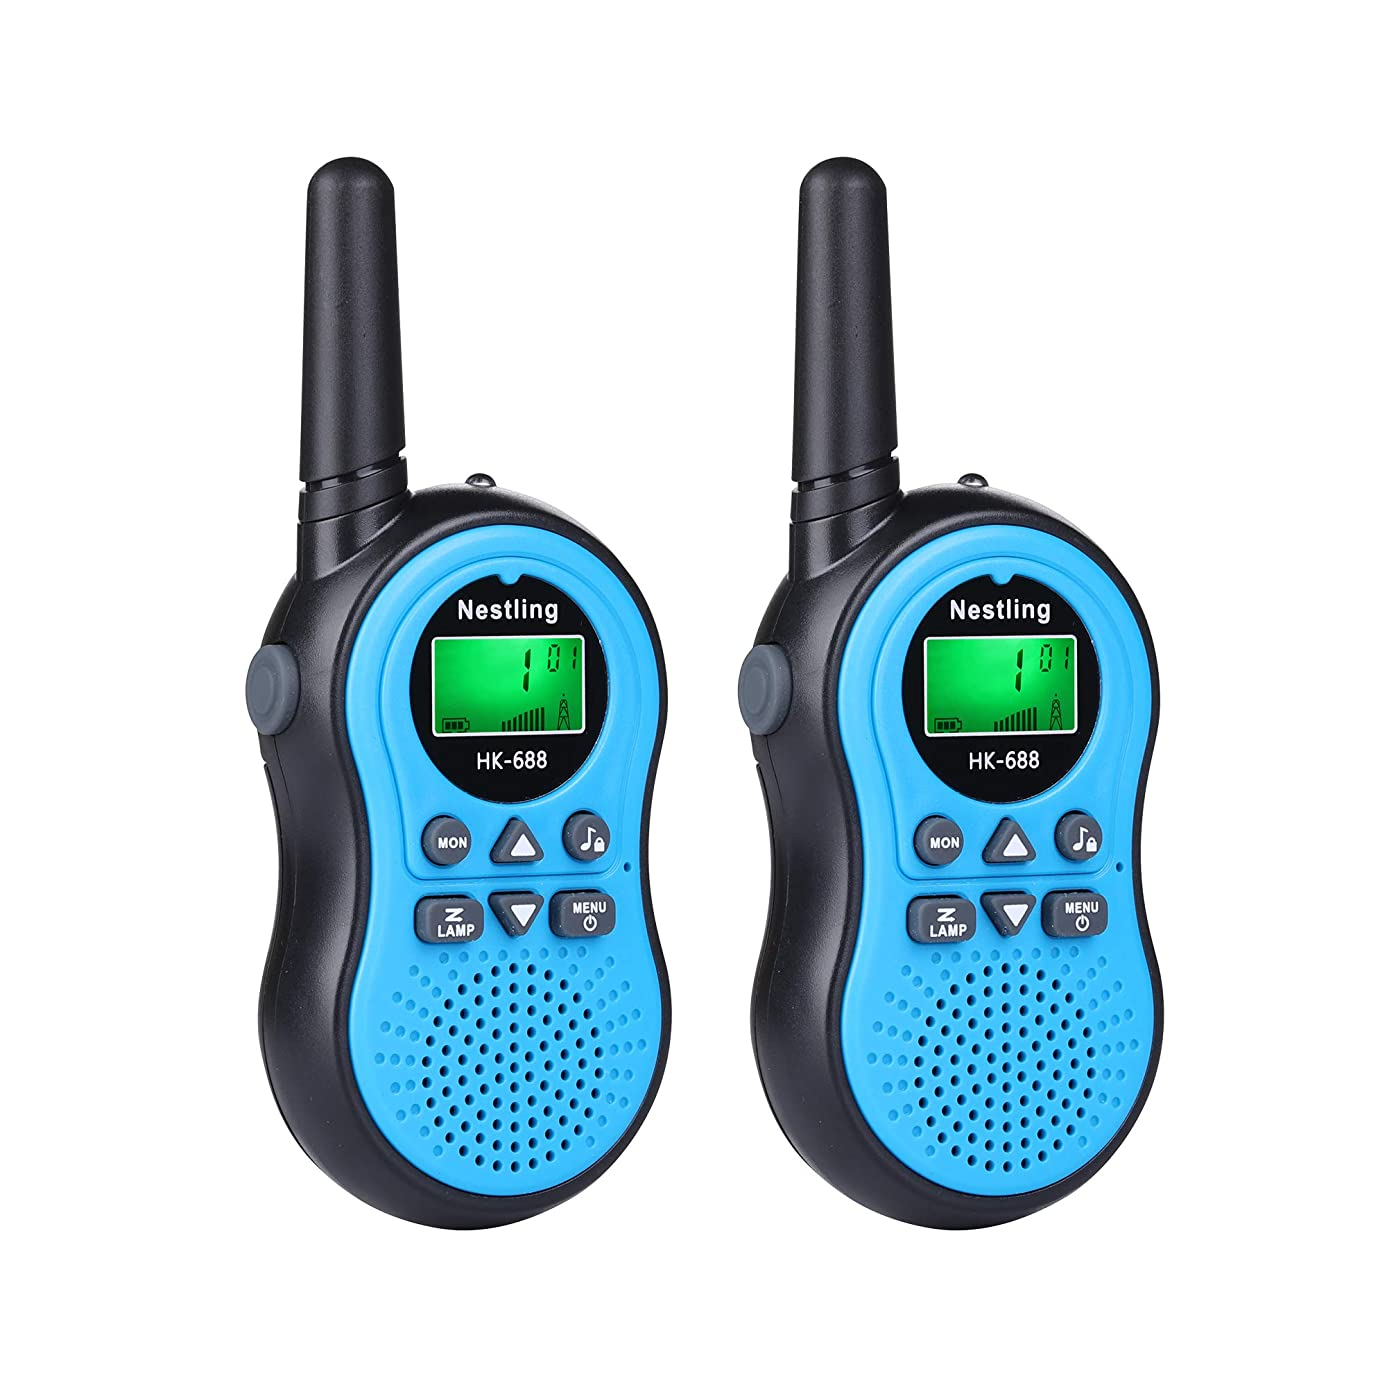 BYBOO Nestling HK-688 Mini Walkie Talkies for Kids 22 Channel 2 Way Radio, Walky Talky Toys for Kids Age 3 4 5 6 7 8 9 10 11 12 Year Old Boys Girls Toddlers (1 Pair, Blue)